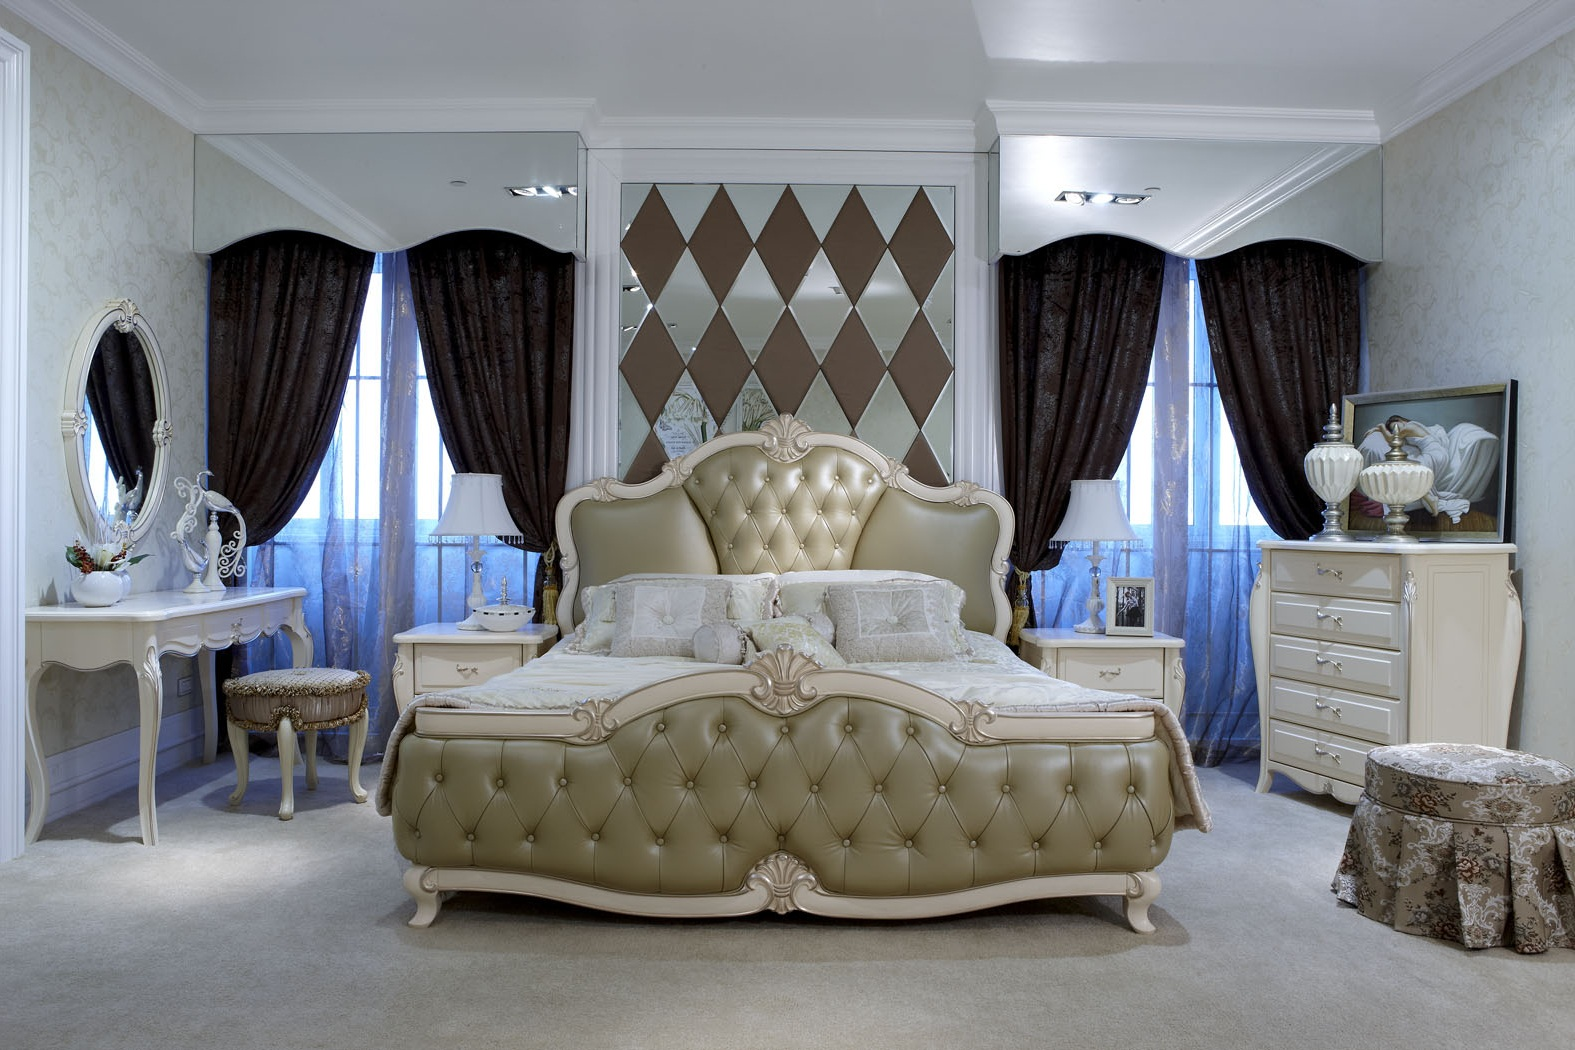 Glamorous Bedroom Furniture And Decoration (View 2 of 9)